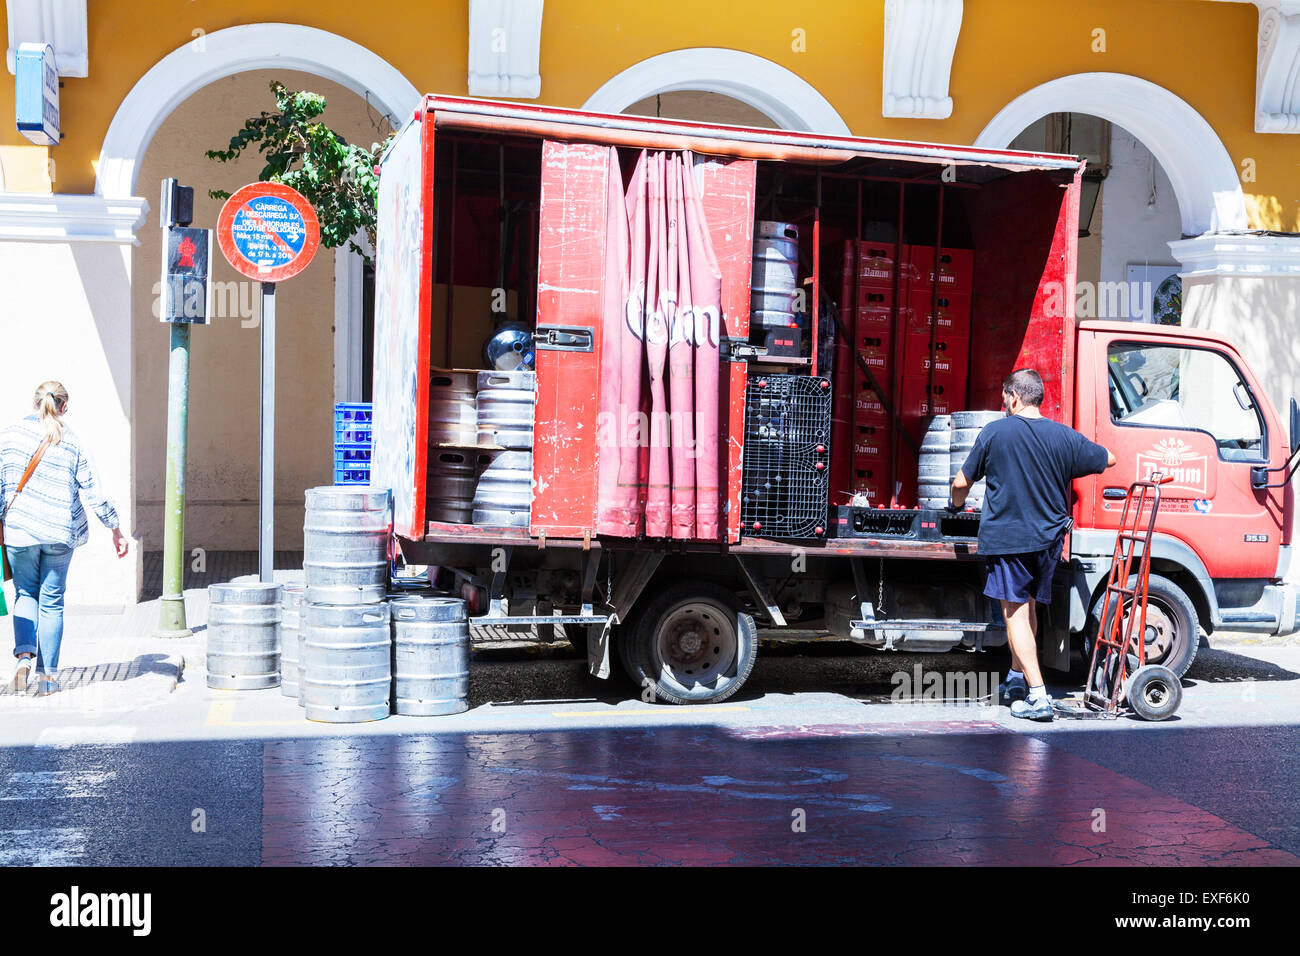 Beer delivery barrels of ale being delivered barrel crate crates in Ibiza Spanish island Spain - Stock Image